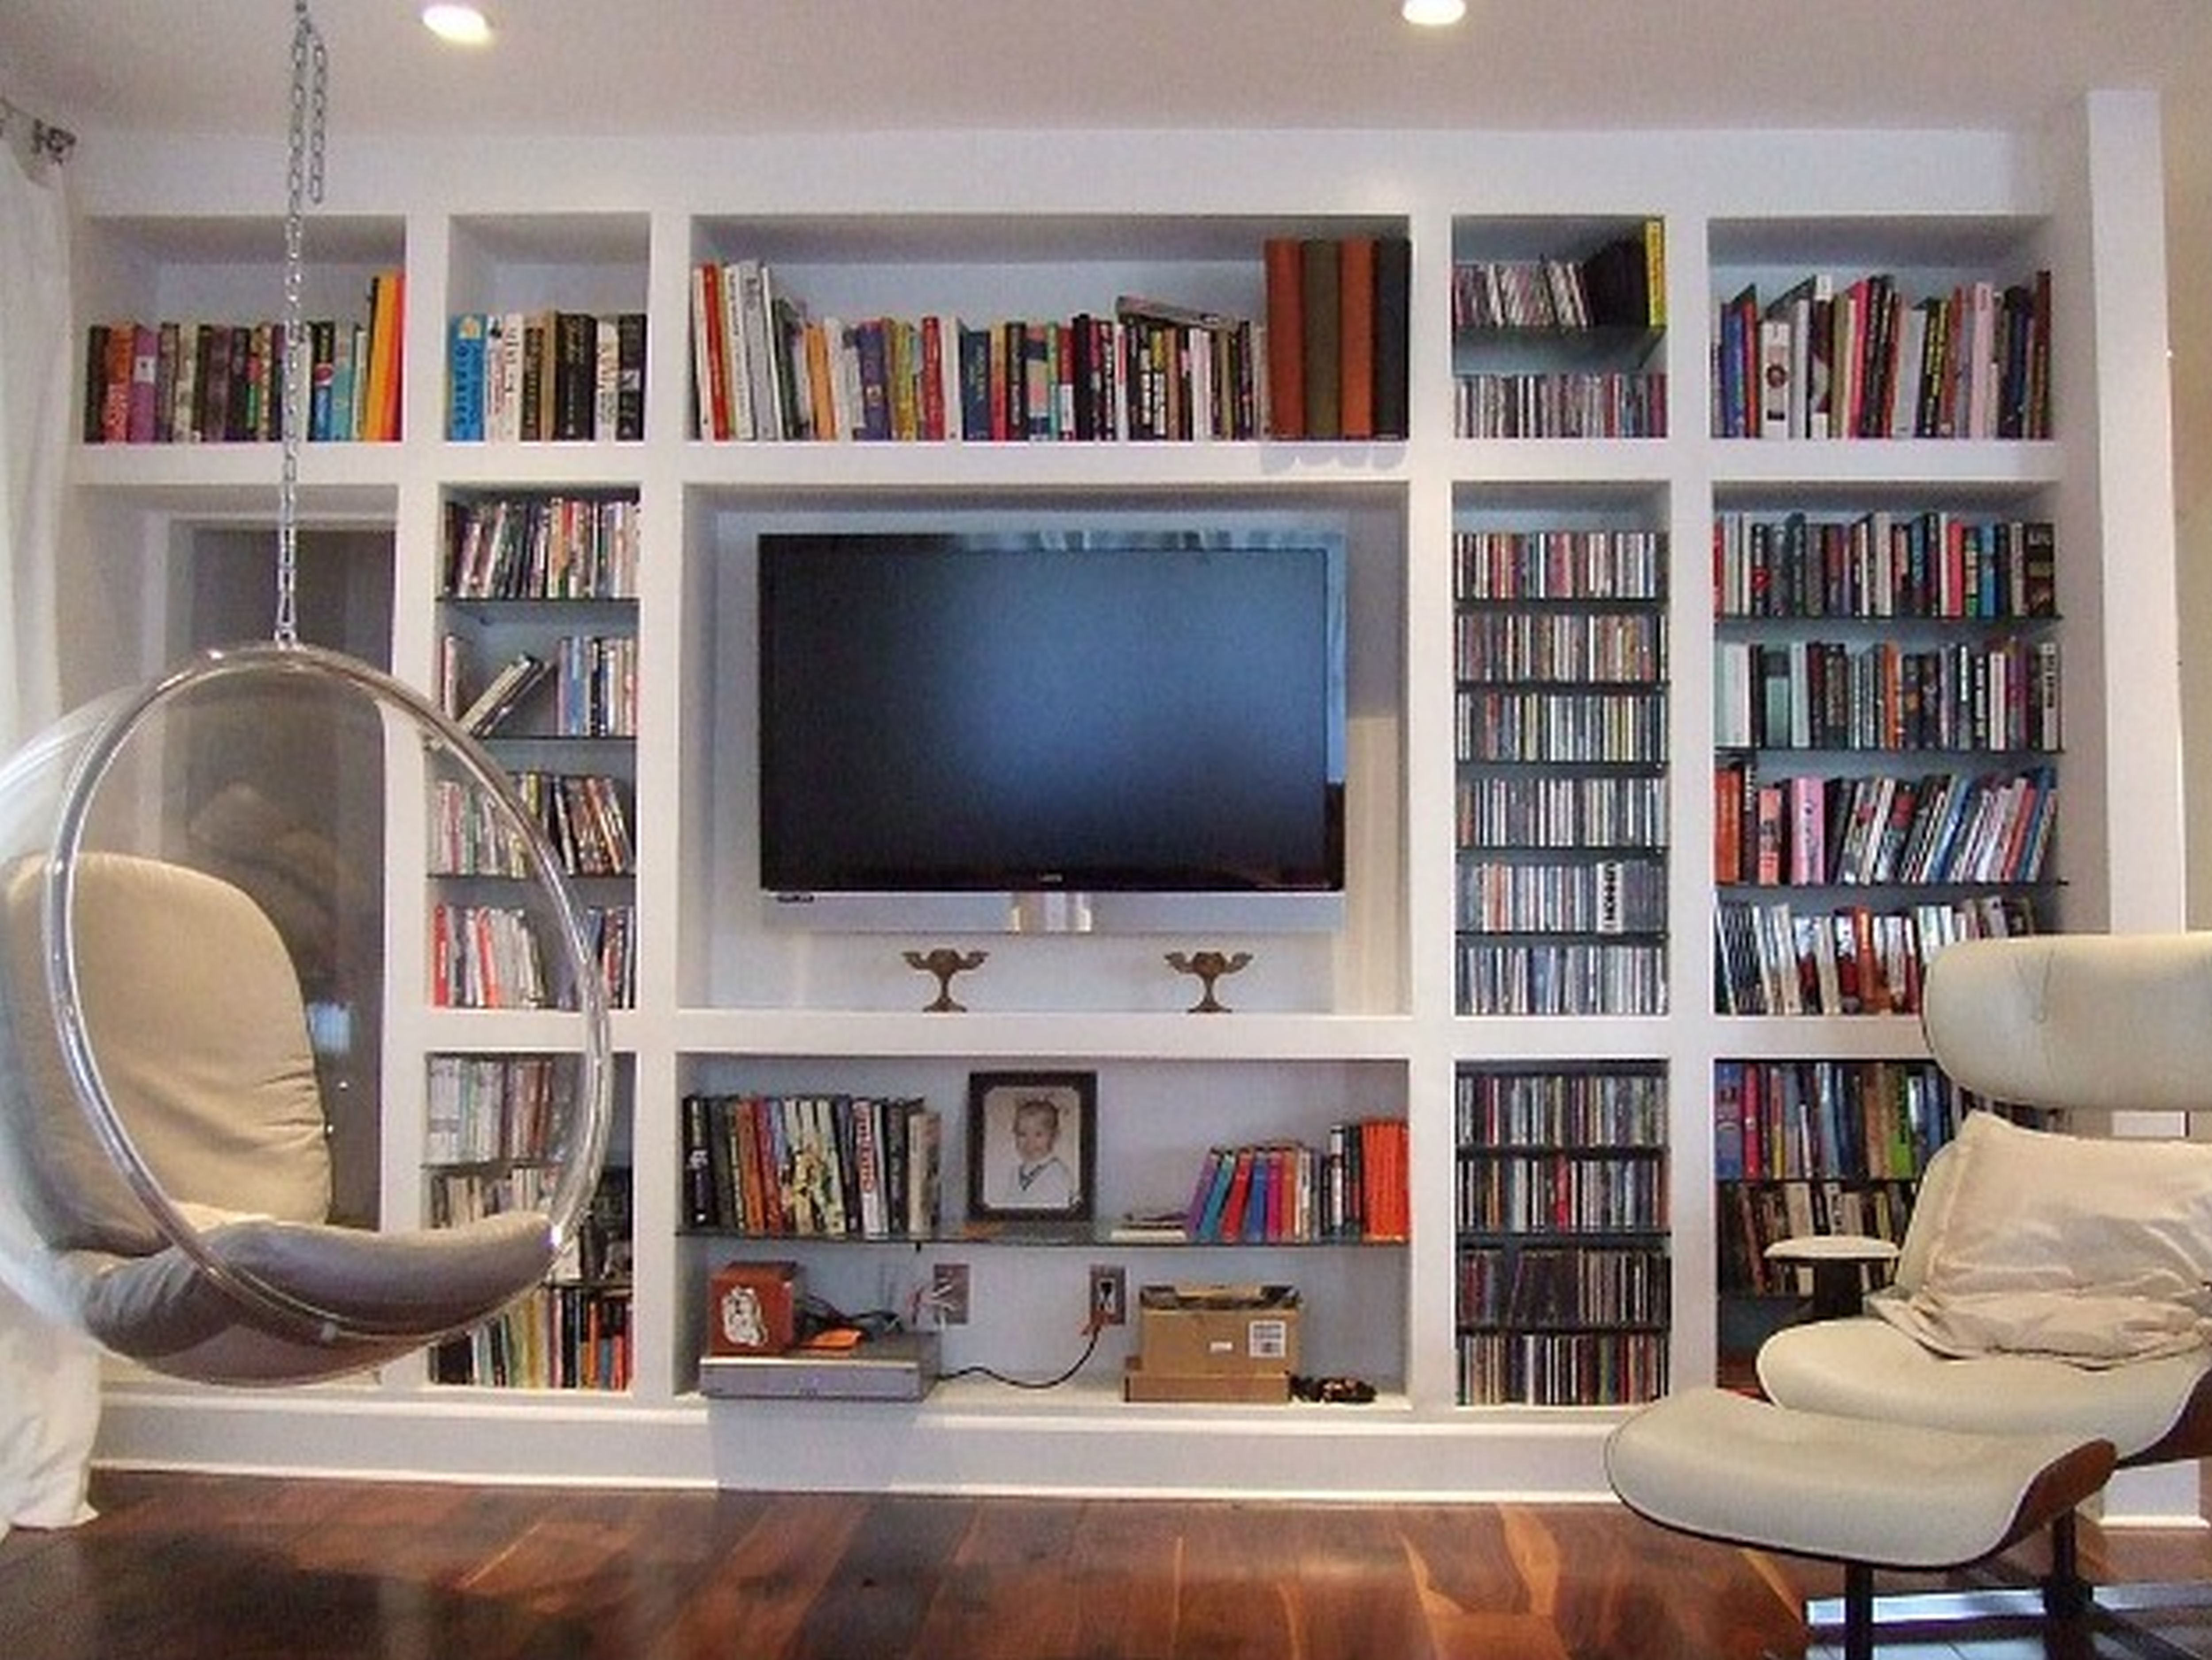 book shelves ideas  bedroom and living room image collections -  images about house on pinterest bookshelves beer table and  imagesabout house on pinterest